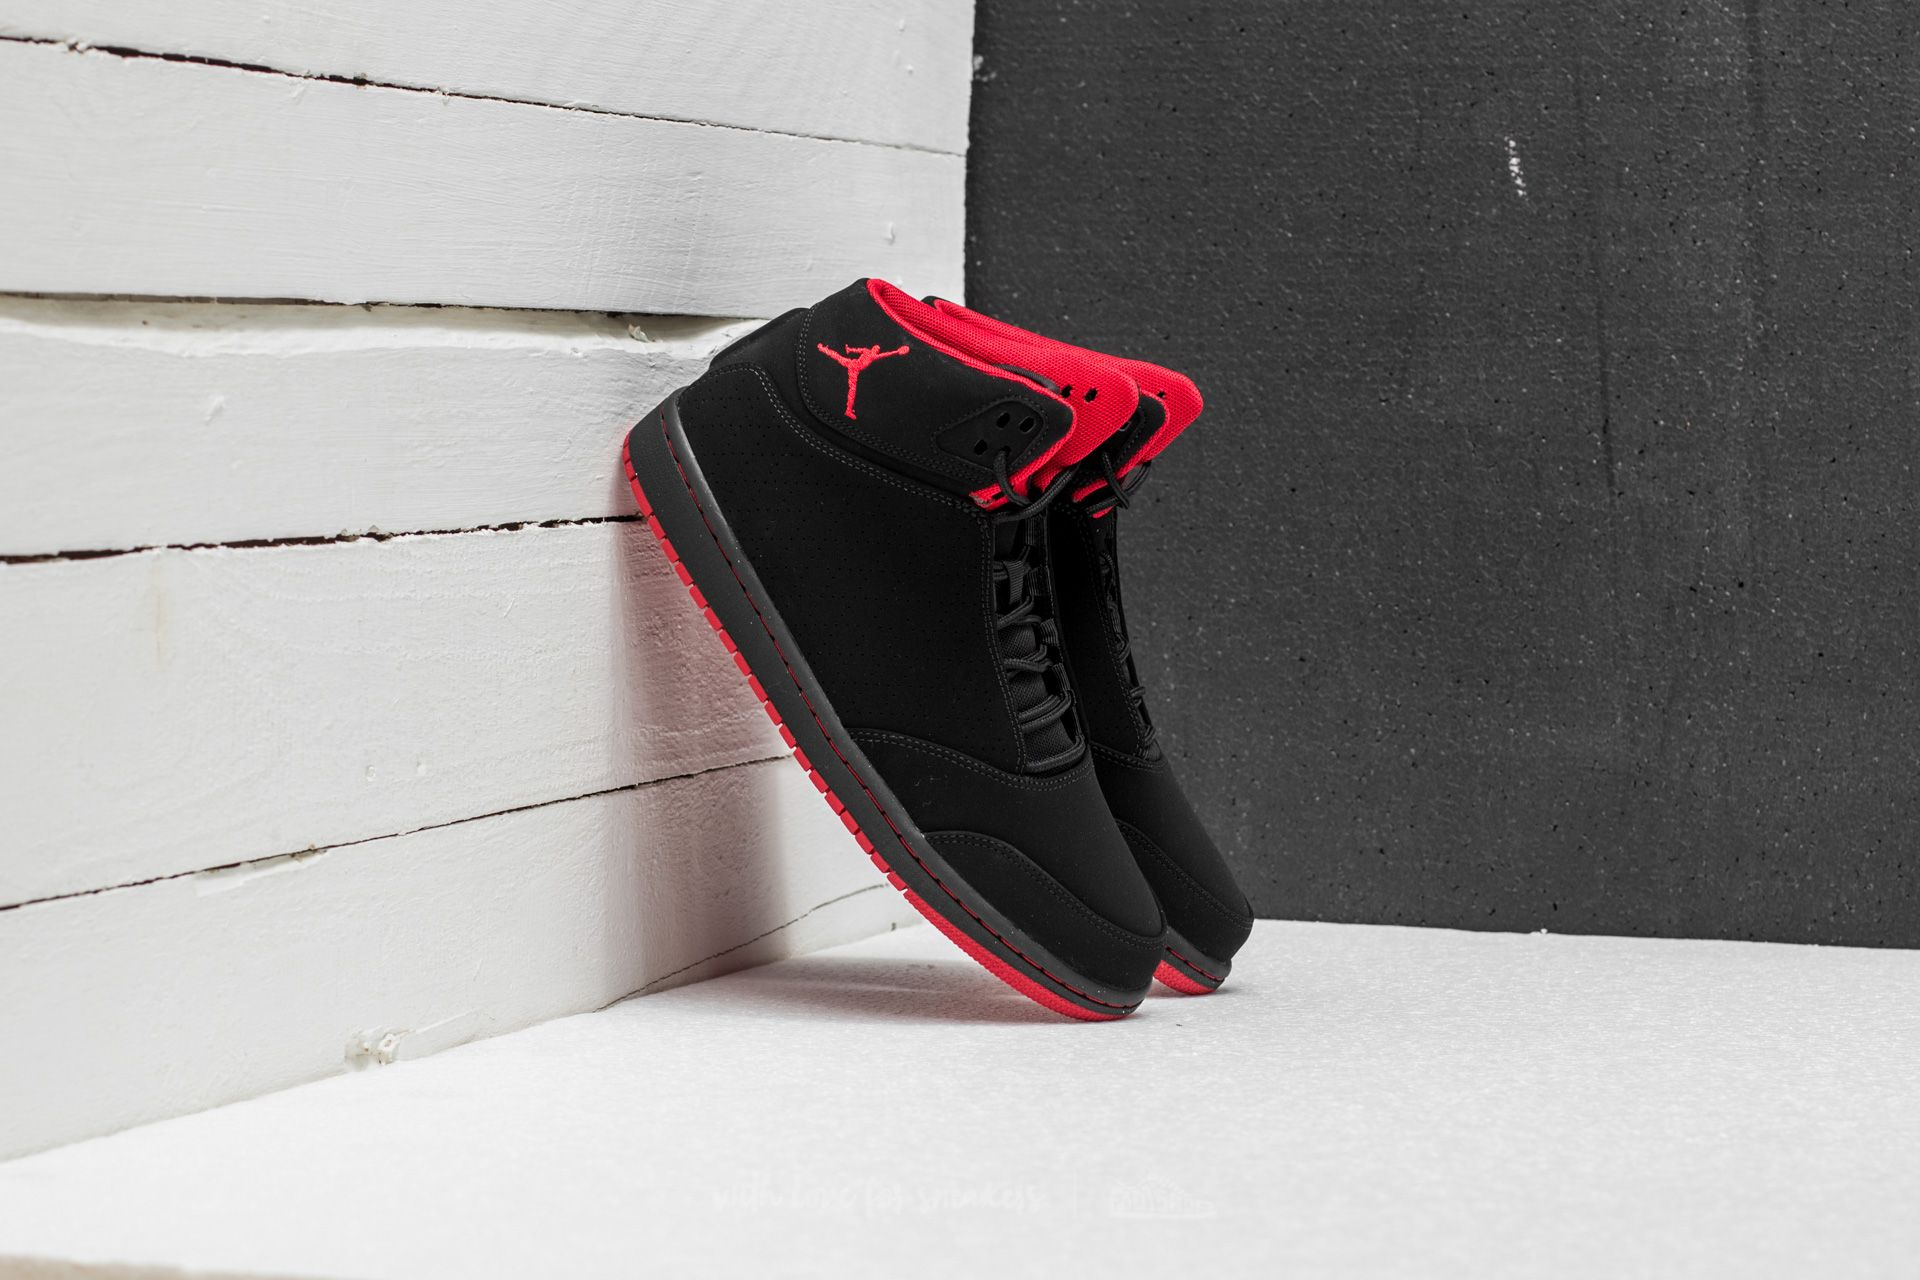 b993a245c Jordan 1 Flight 5 Black/ Gym Red | Footshop